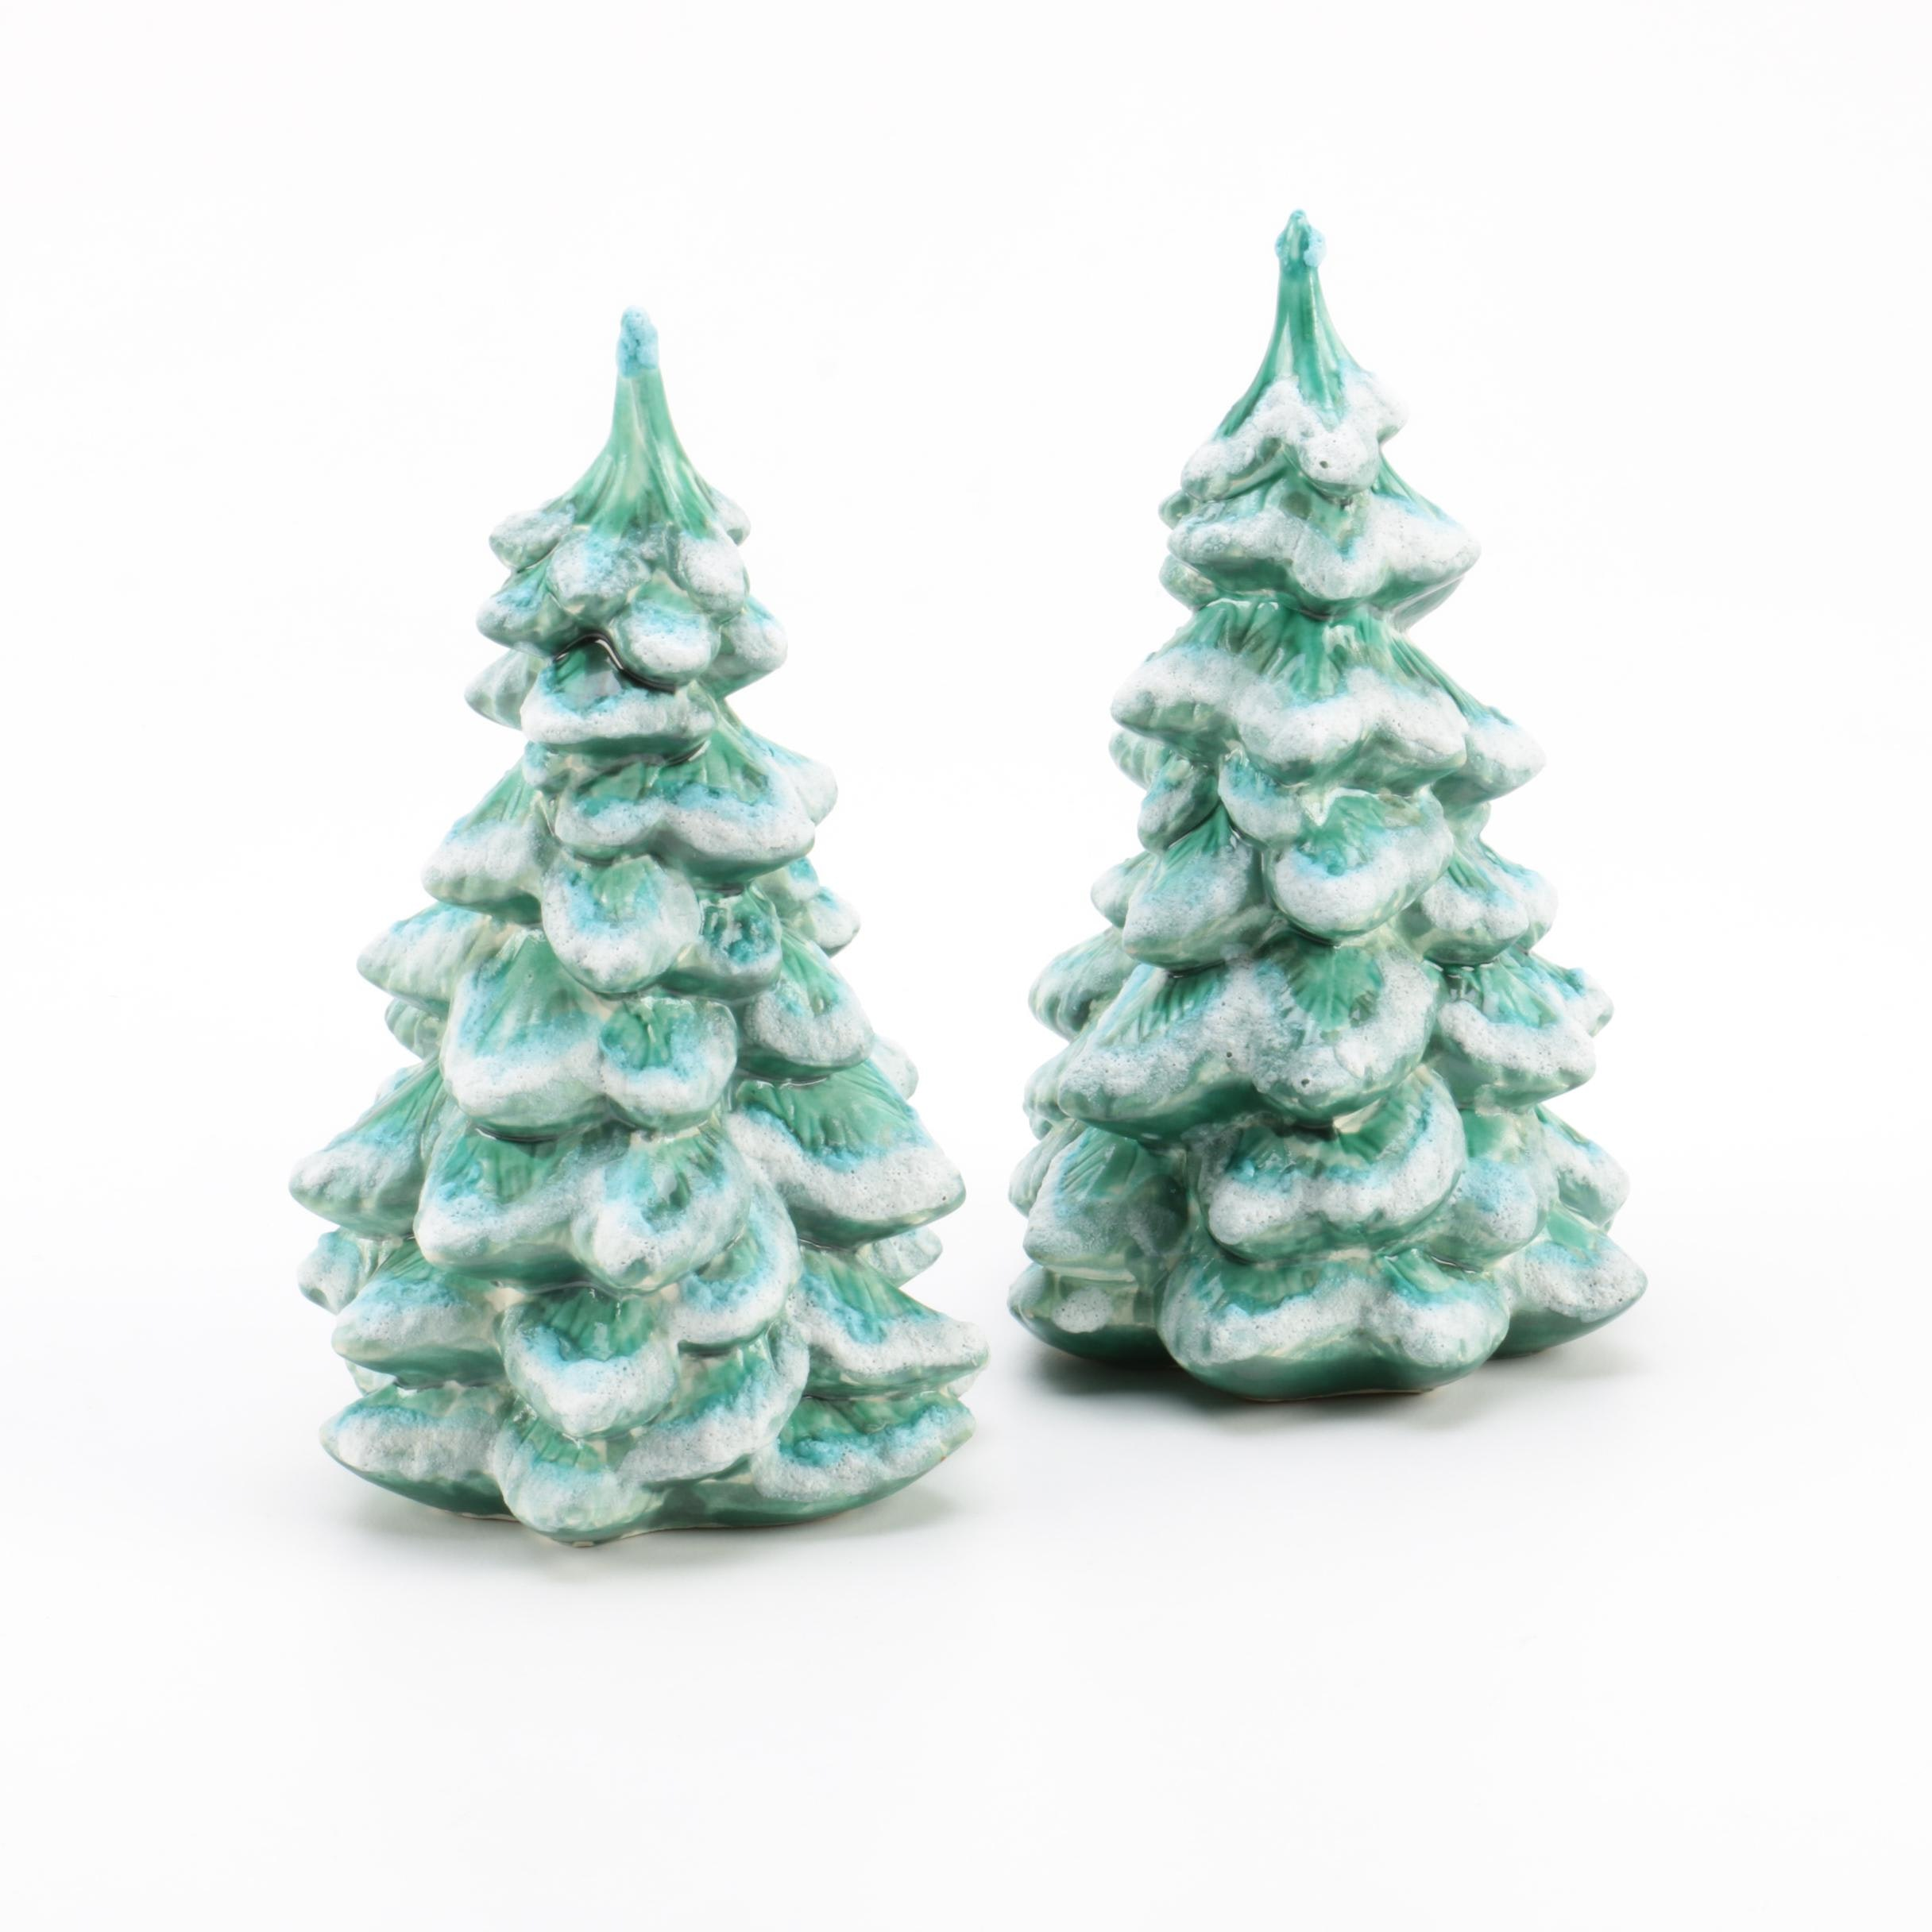 Vintage Holland Mold Ceramic Christmas Trees